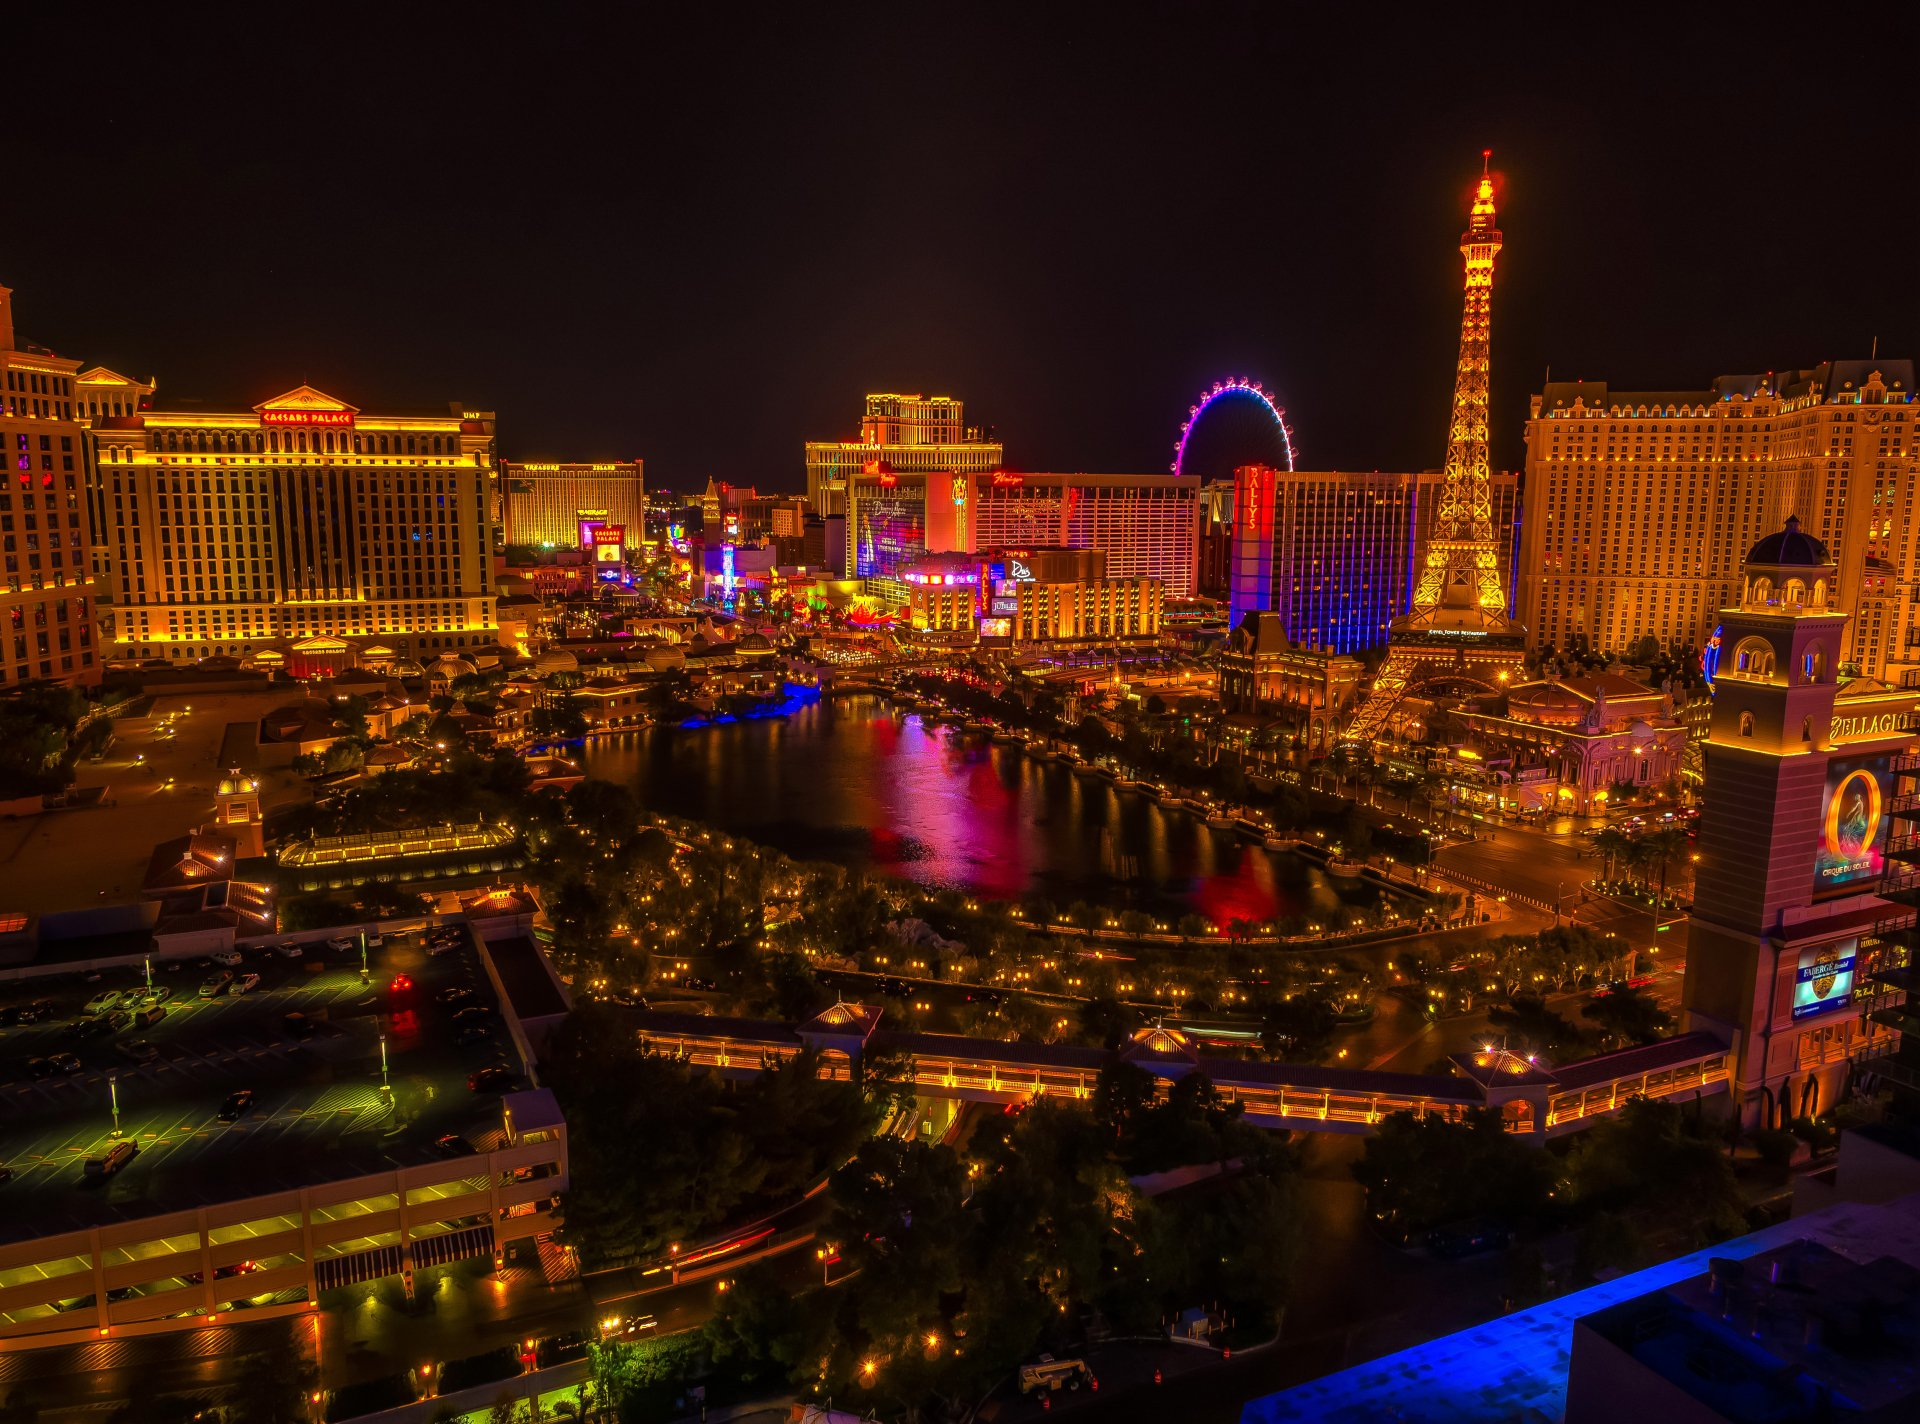 Nighttime In Las Vegas 4k Ultra HD Wallpaper